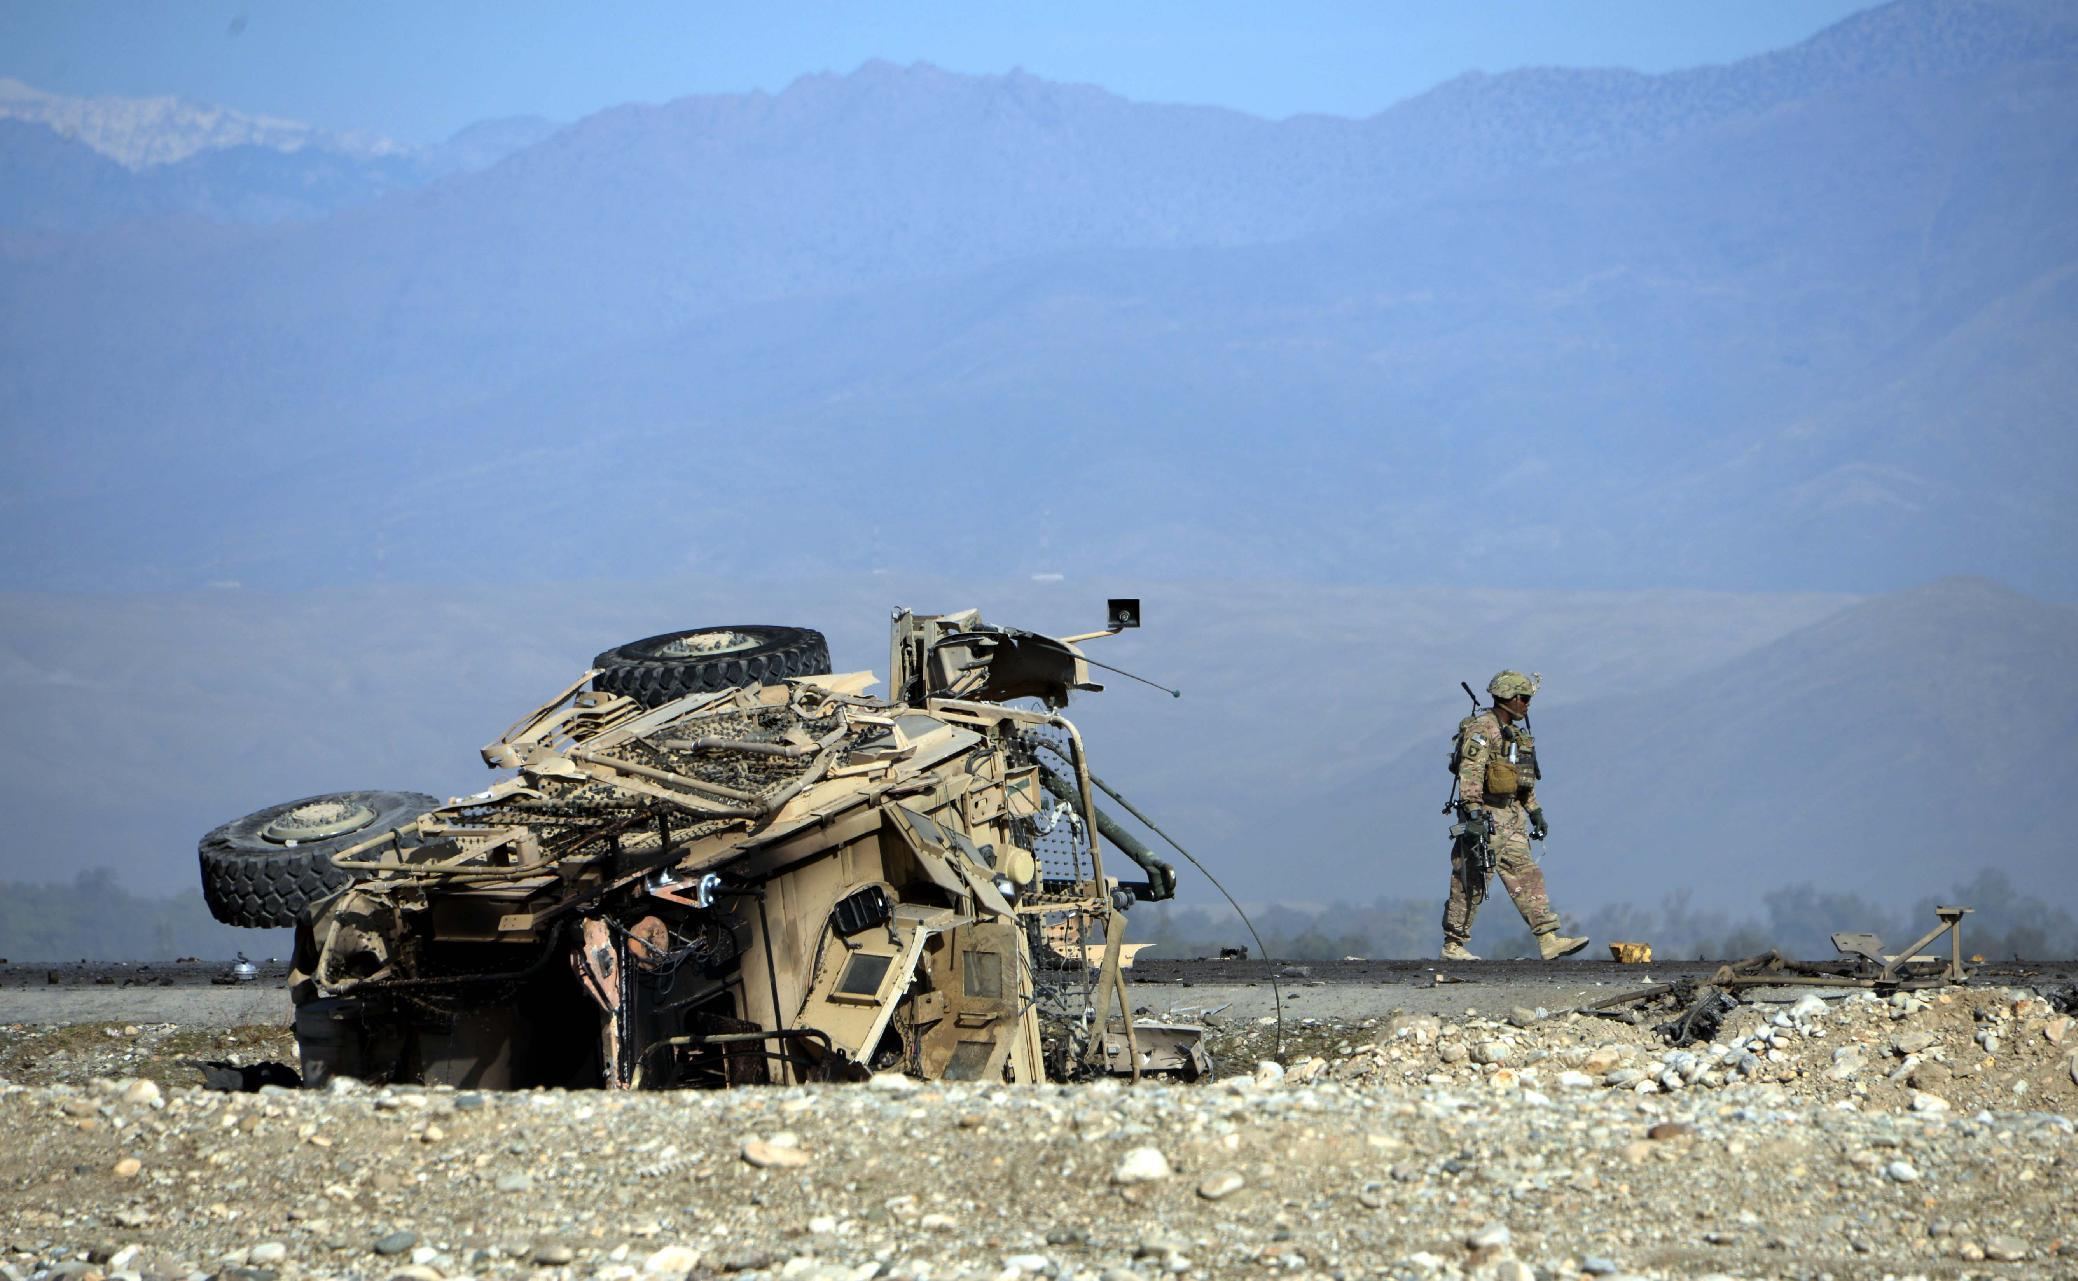 US plagued by doubts as it exits Afghan war